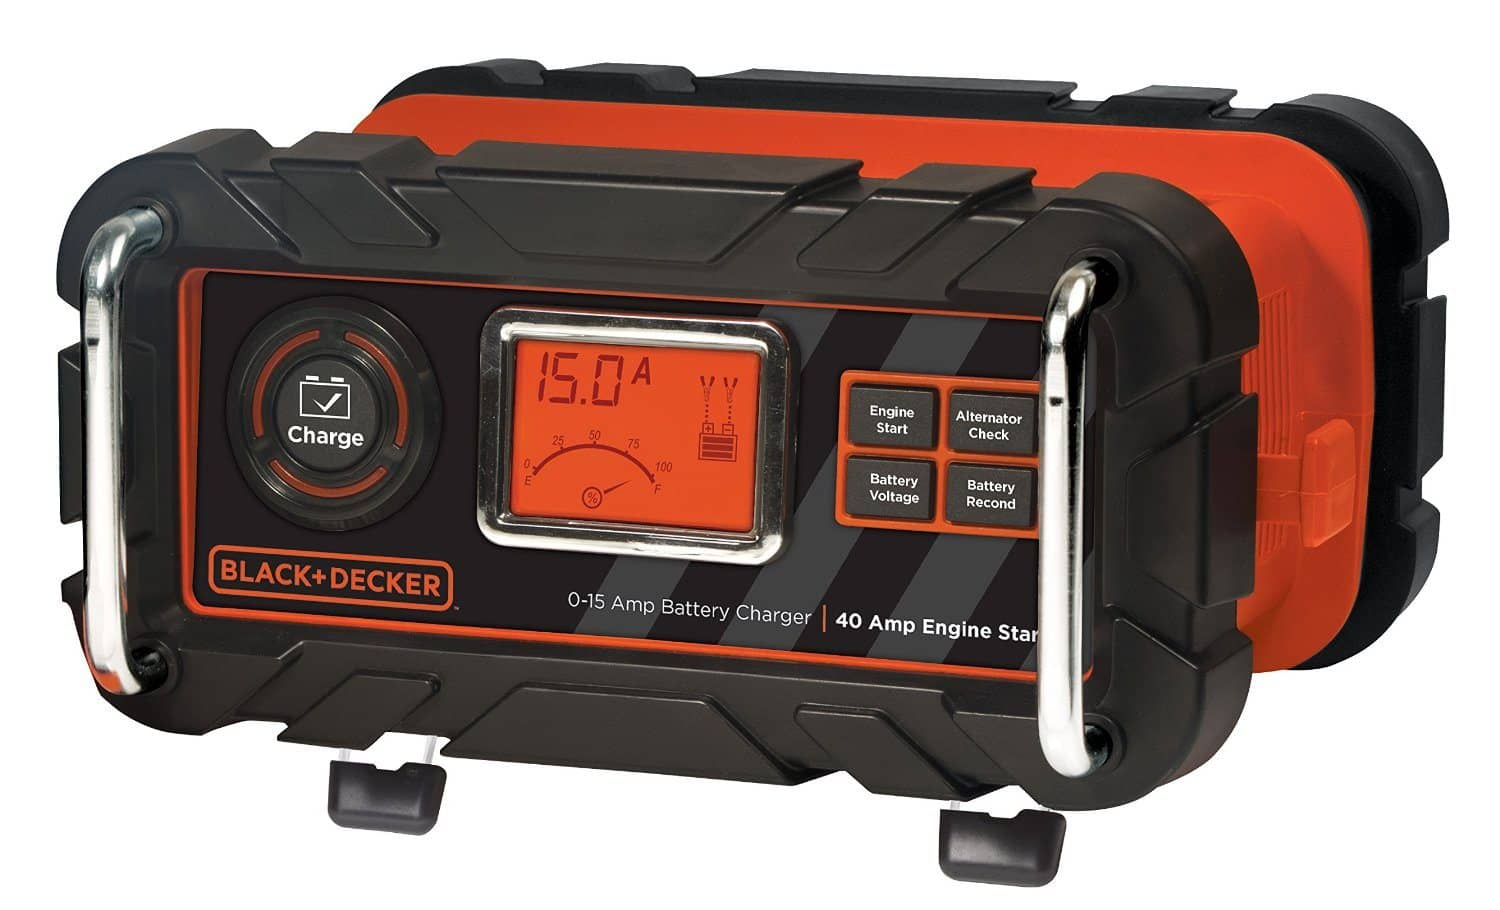 Black & Decker BC15BD 15 Amp Bench Battery Charger with Engine Start Timer